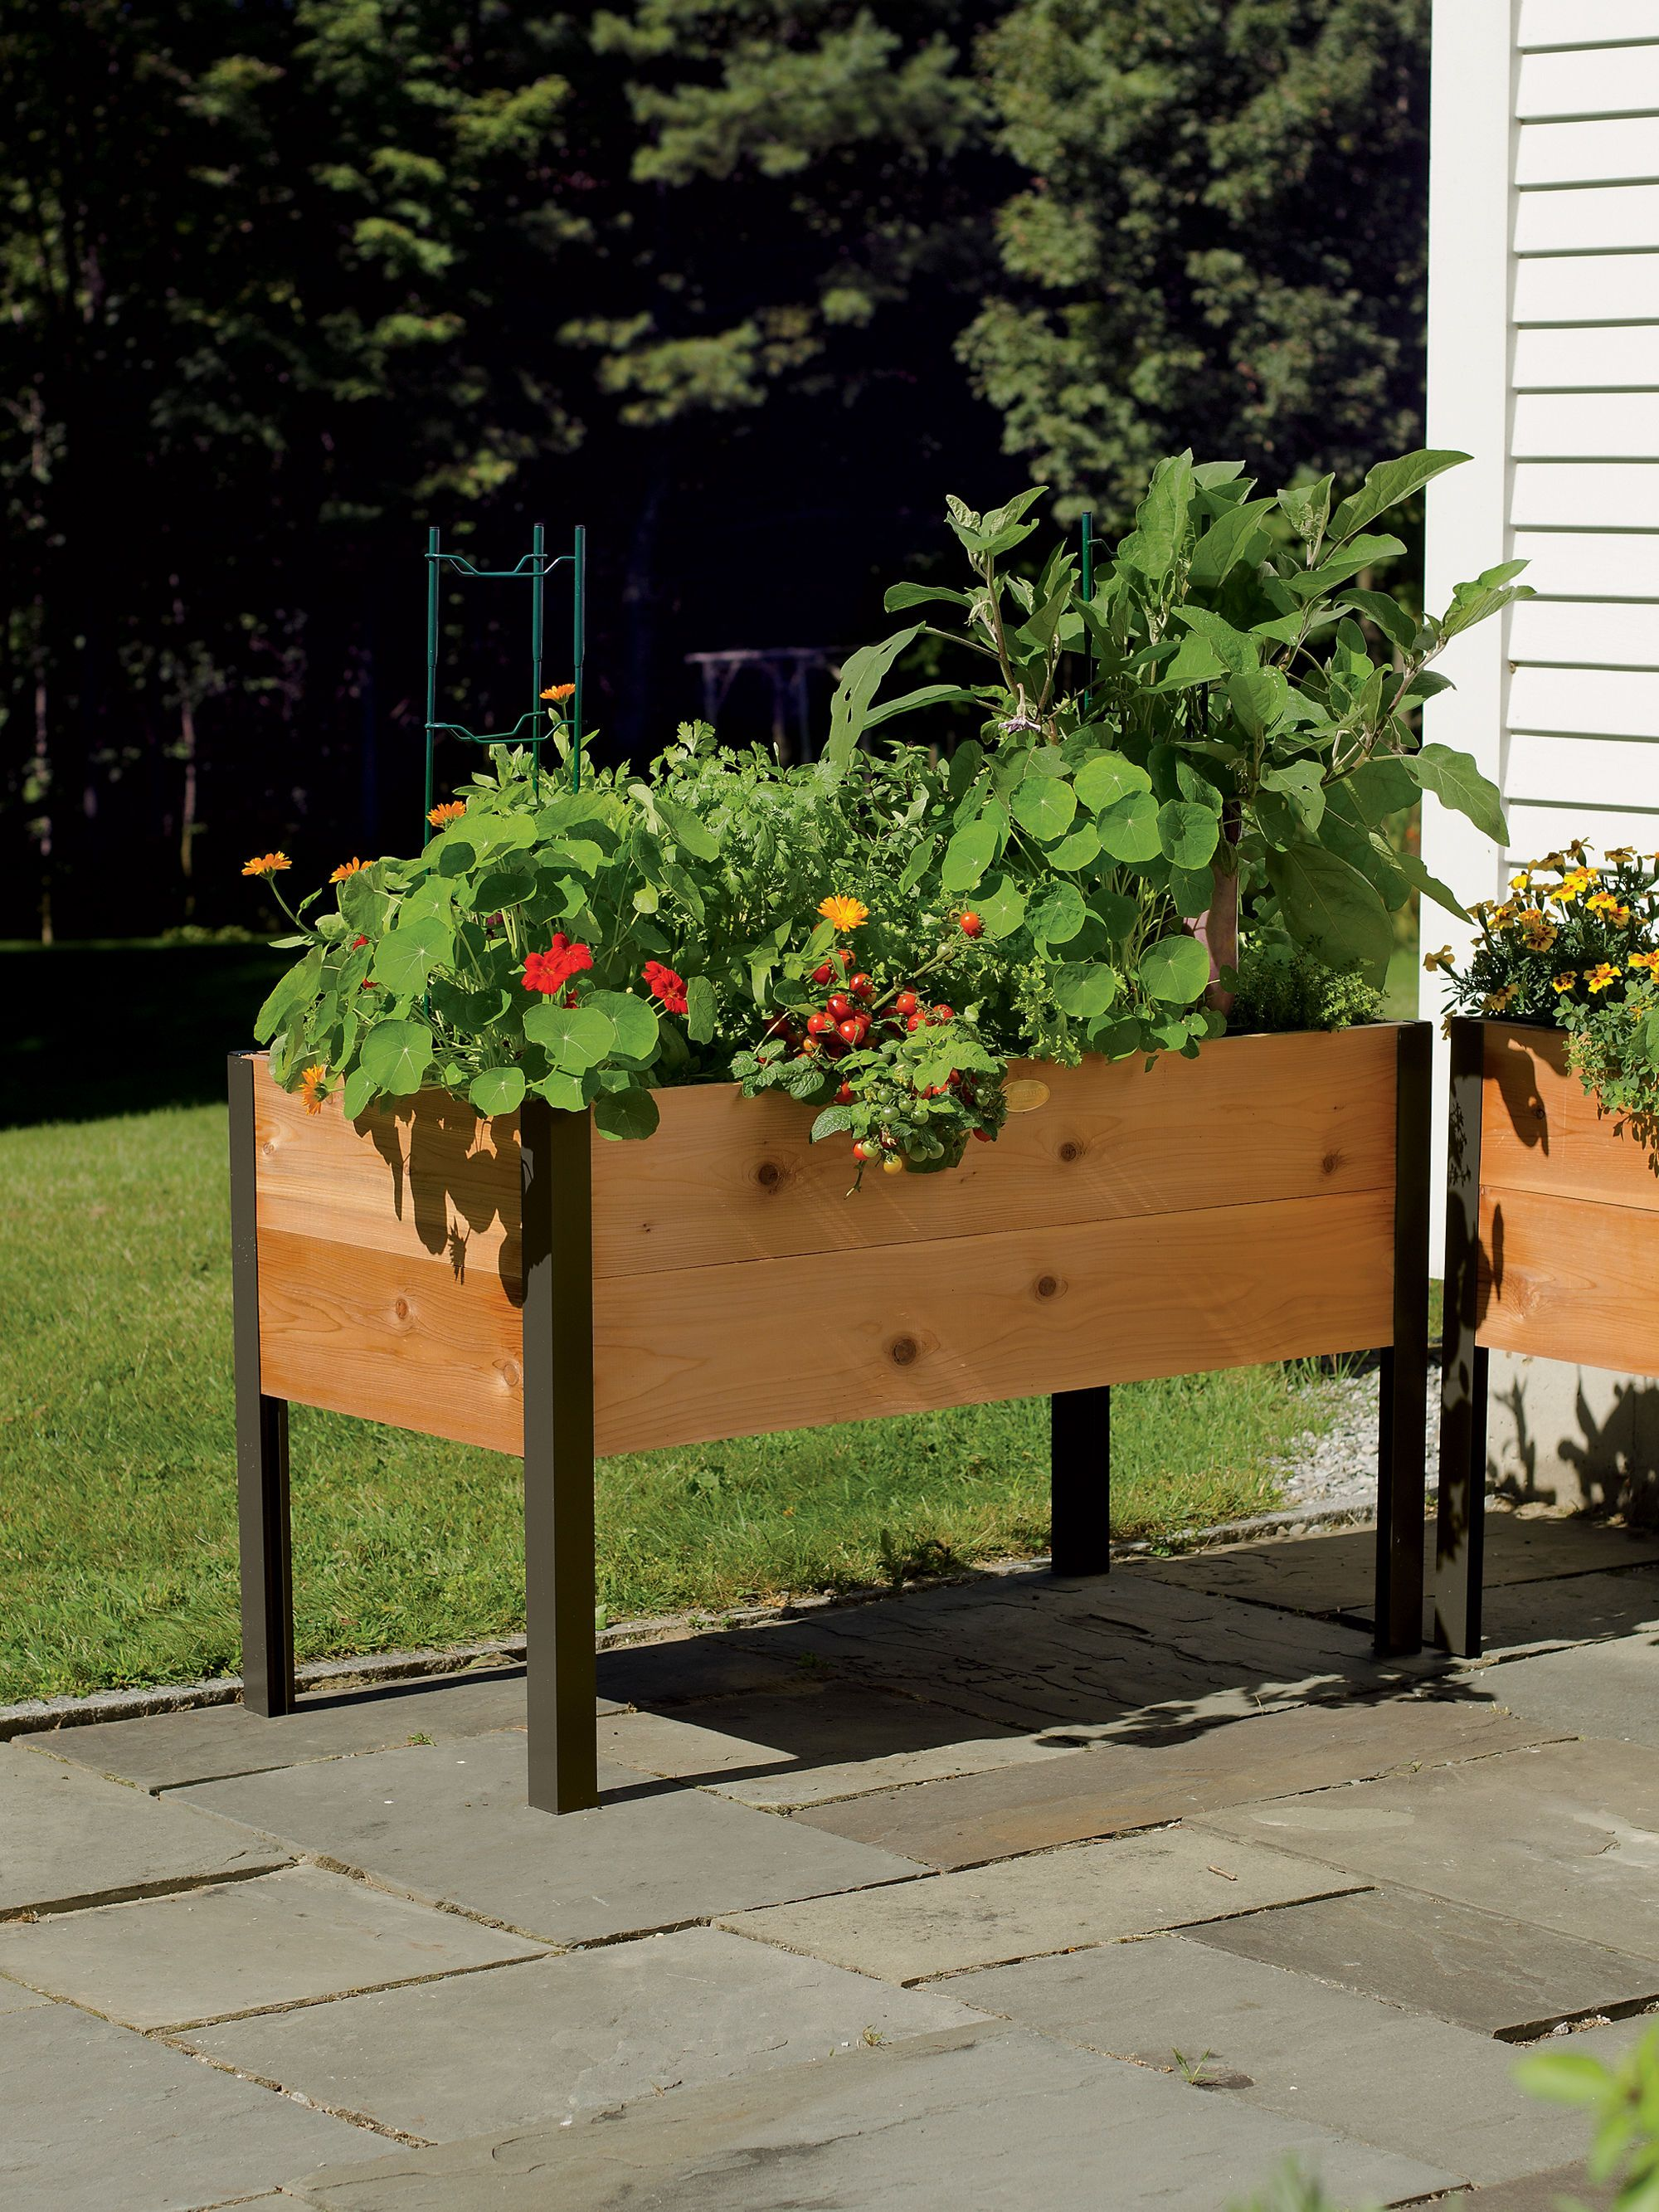 Above ground garden beds plants - Elevated Garden Beds Eliminate The Need To Bend Or Kneel And Make It Convenient To Plant Tend And Harvest Vegetables And Flowers Satisfaction Guaranteed